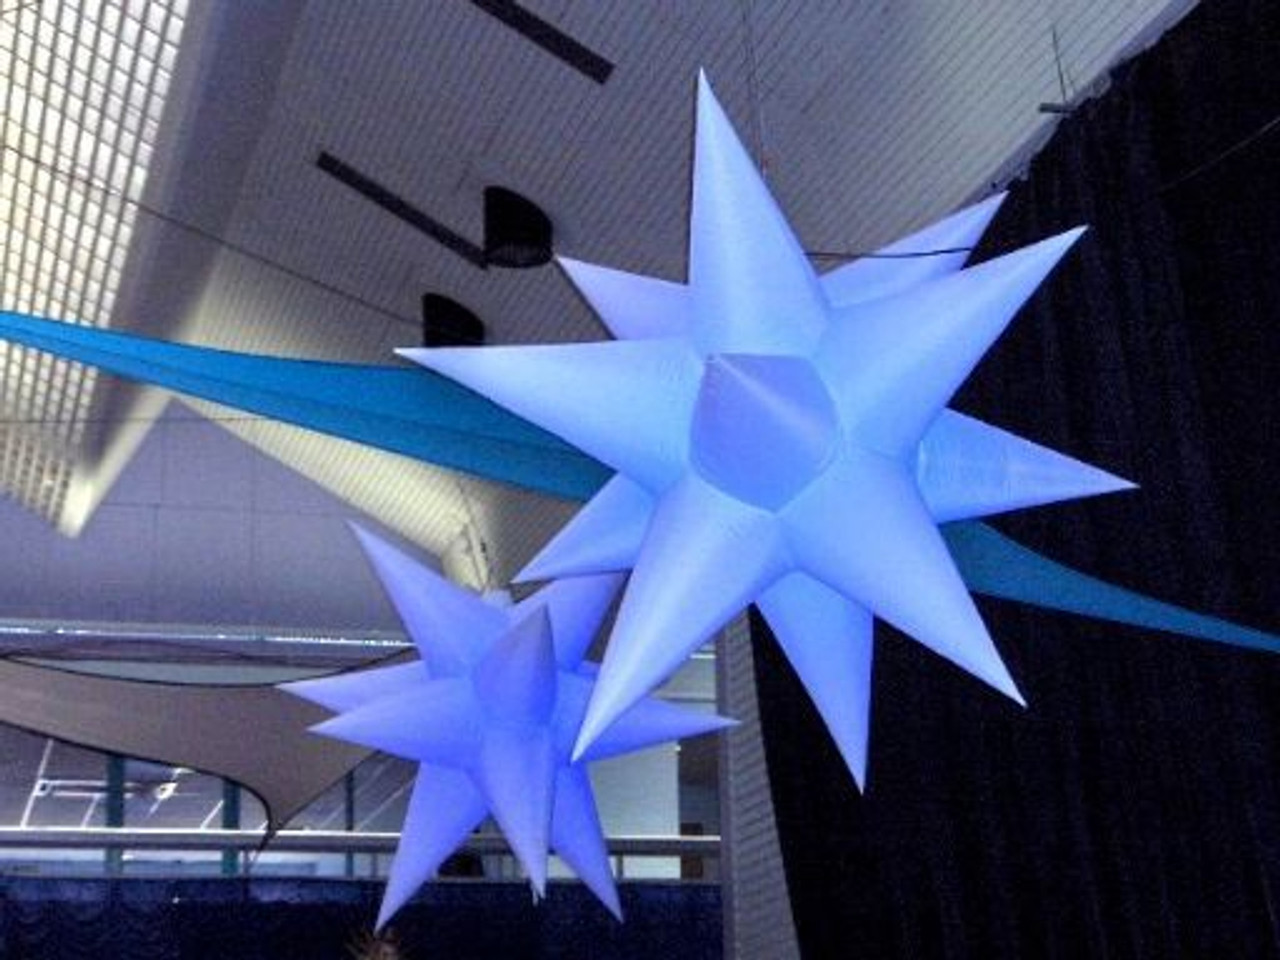 Inflatable star, ceiling, mount, mounted, hanging, color, remote